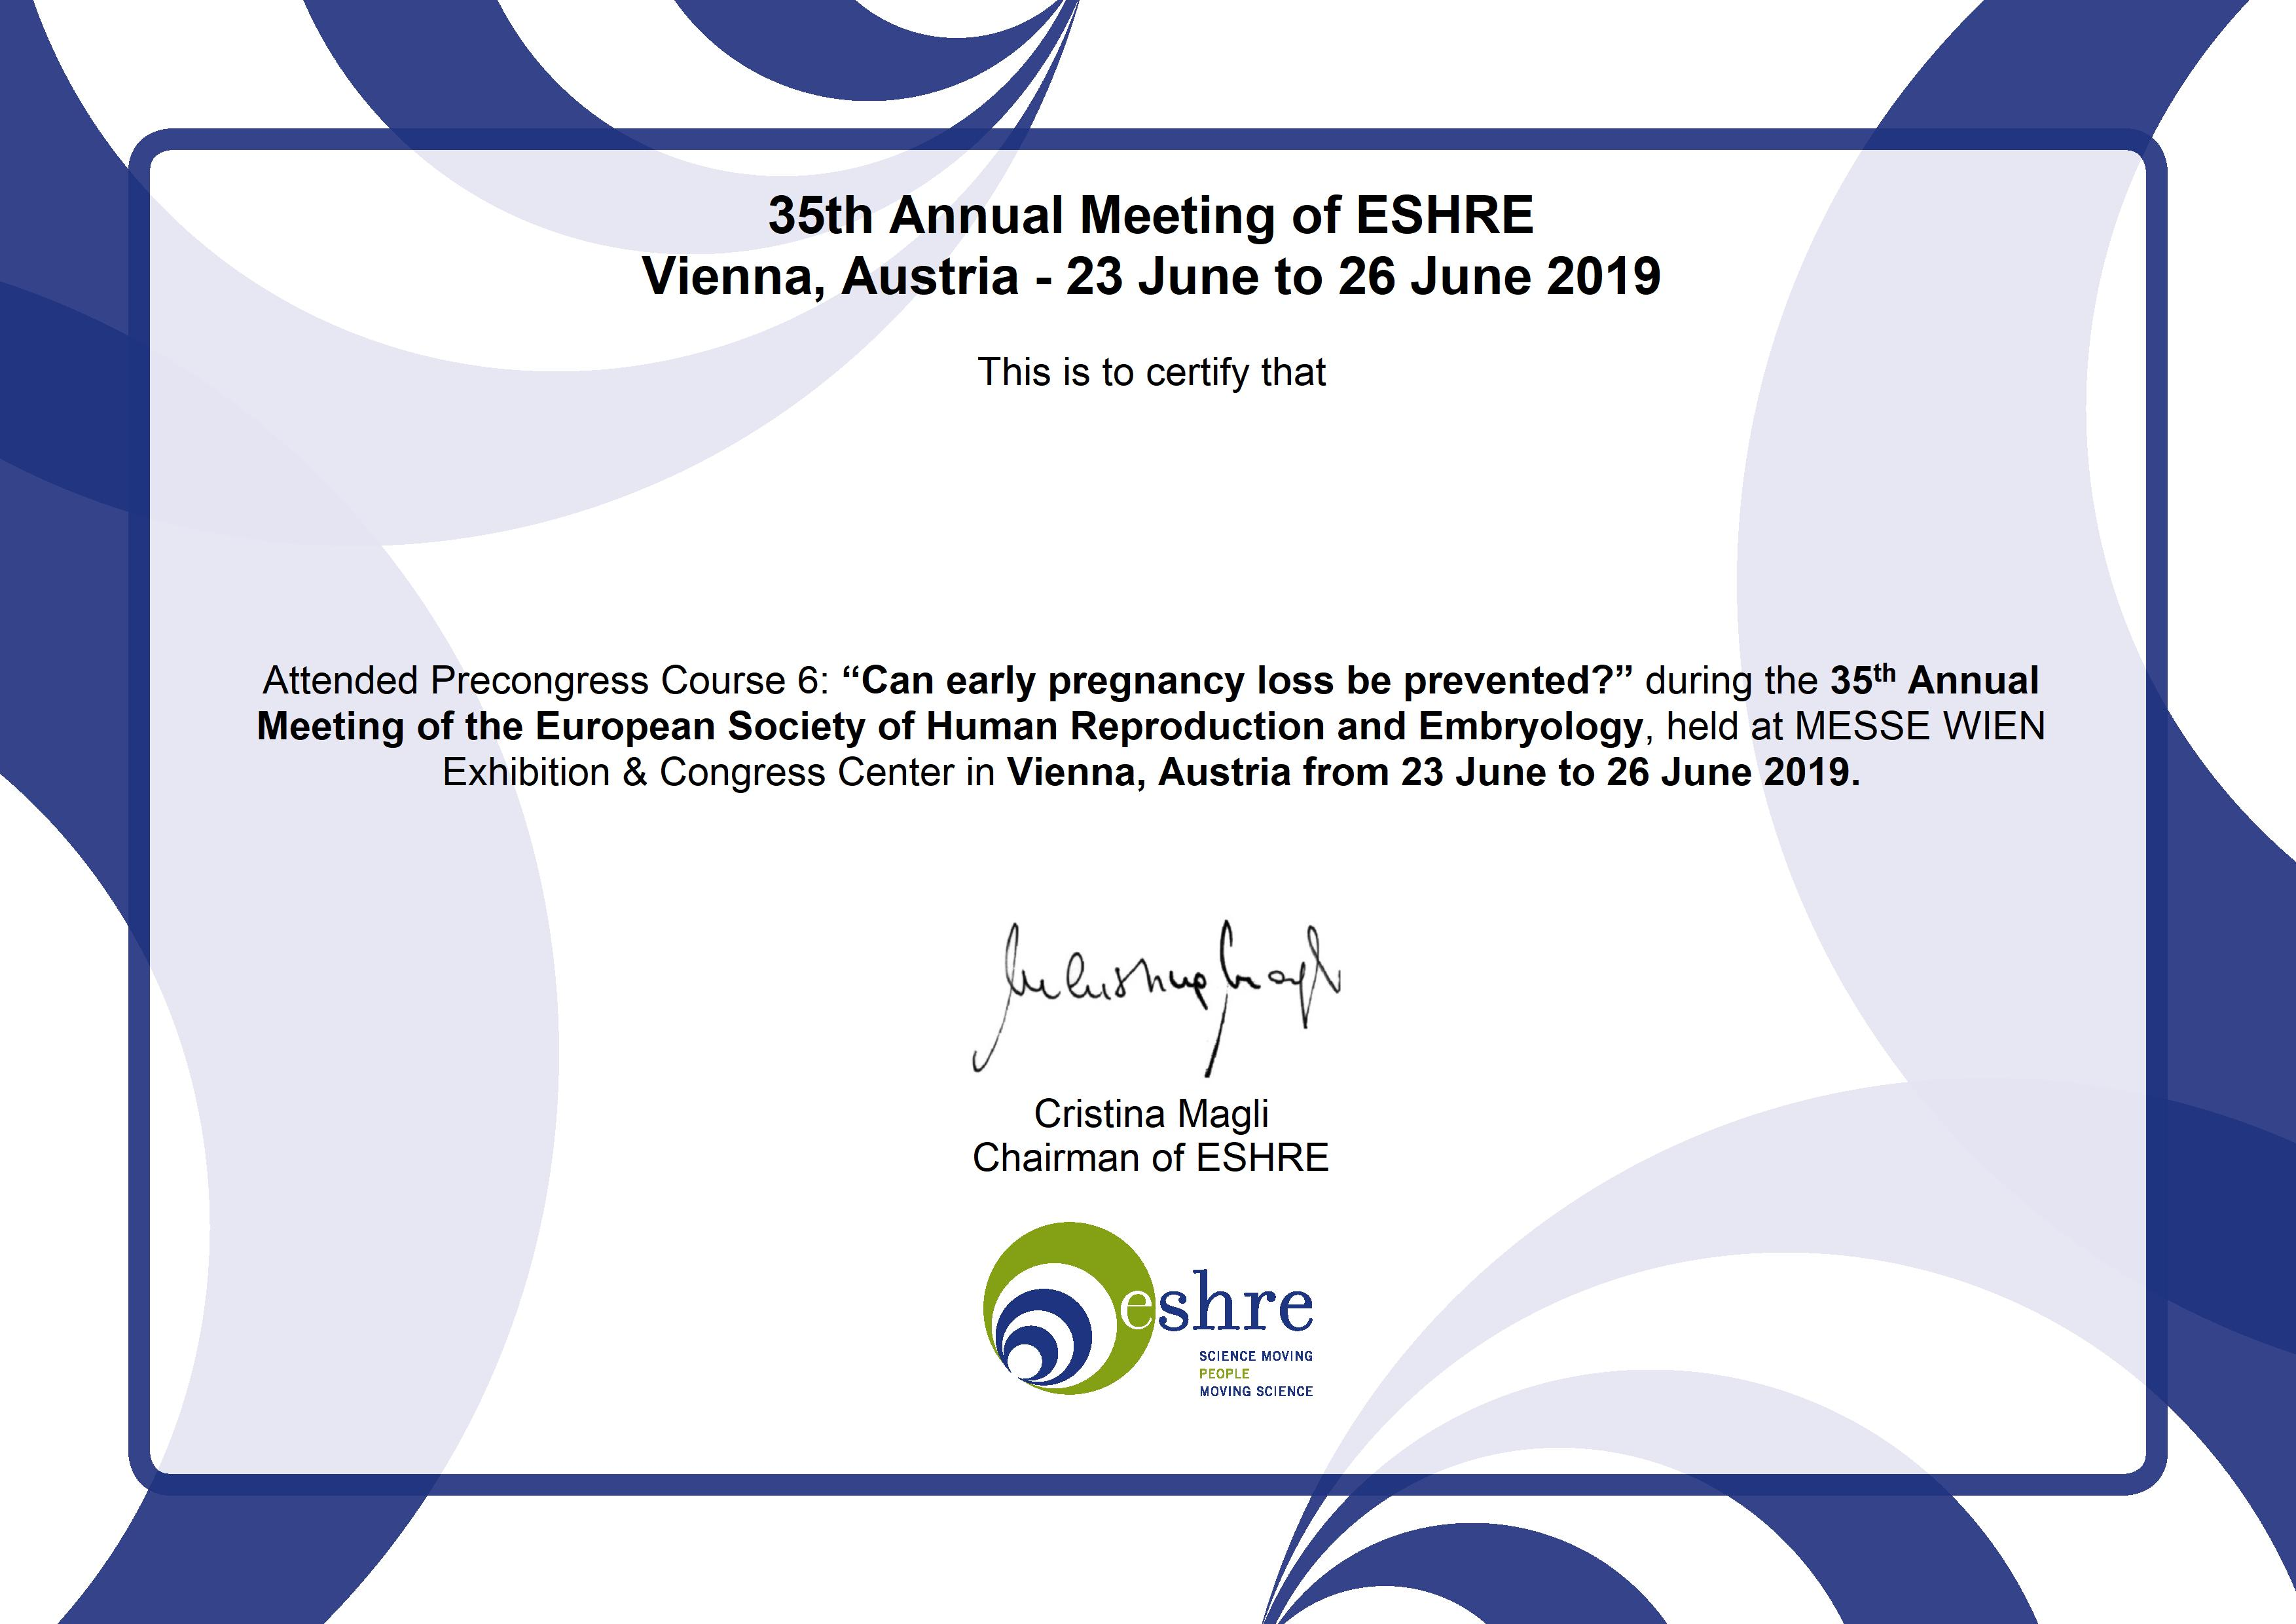 35th-ESHRE-Fraidakis-Crete-Fertility-Centre-04